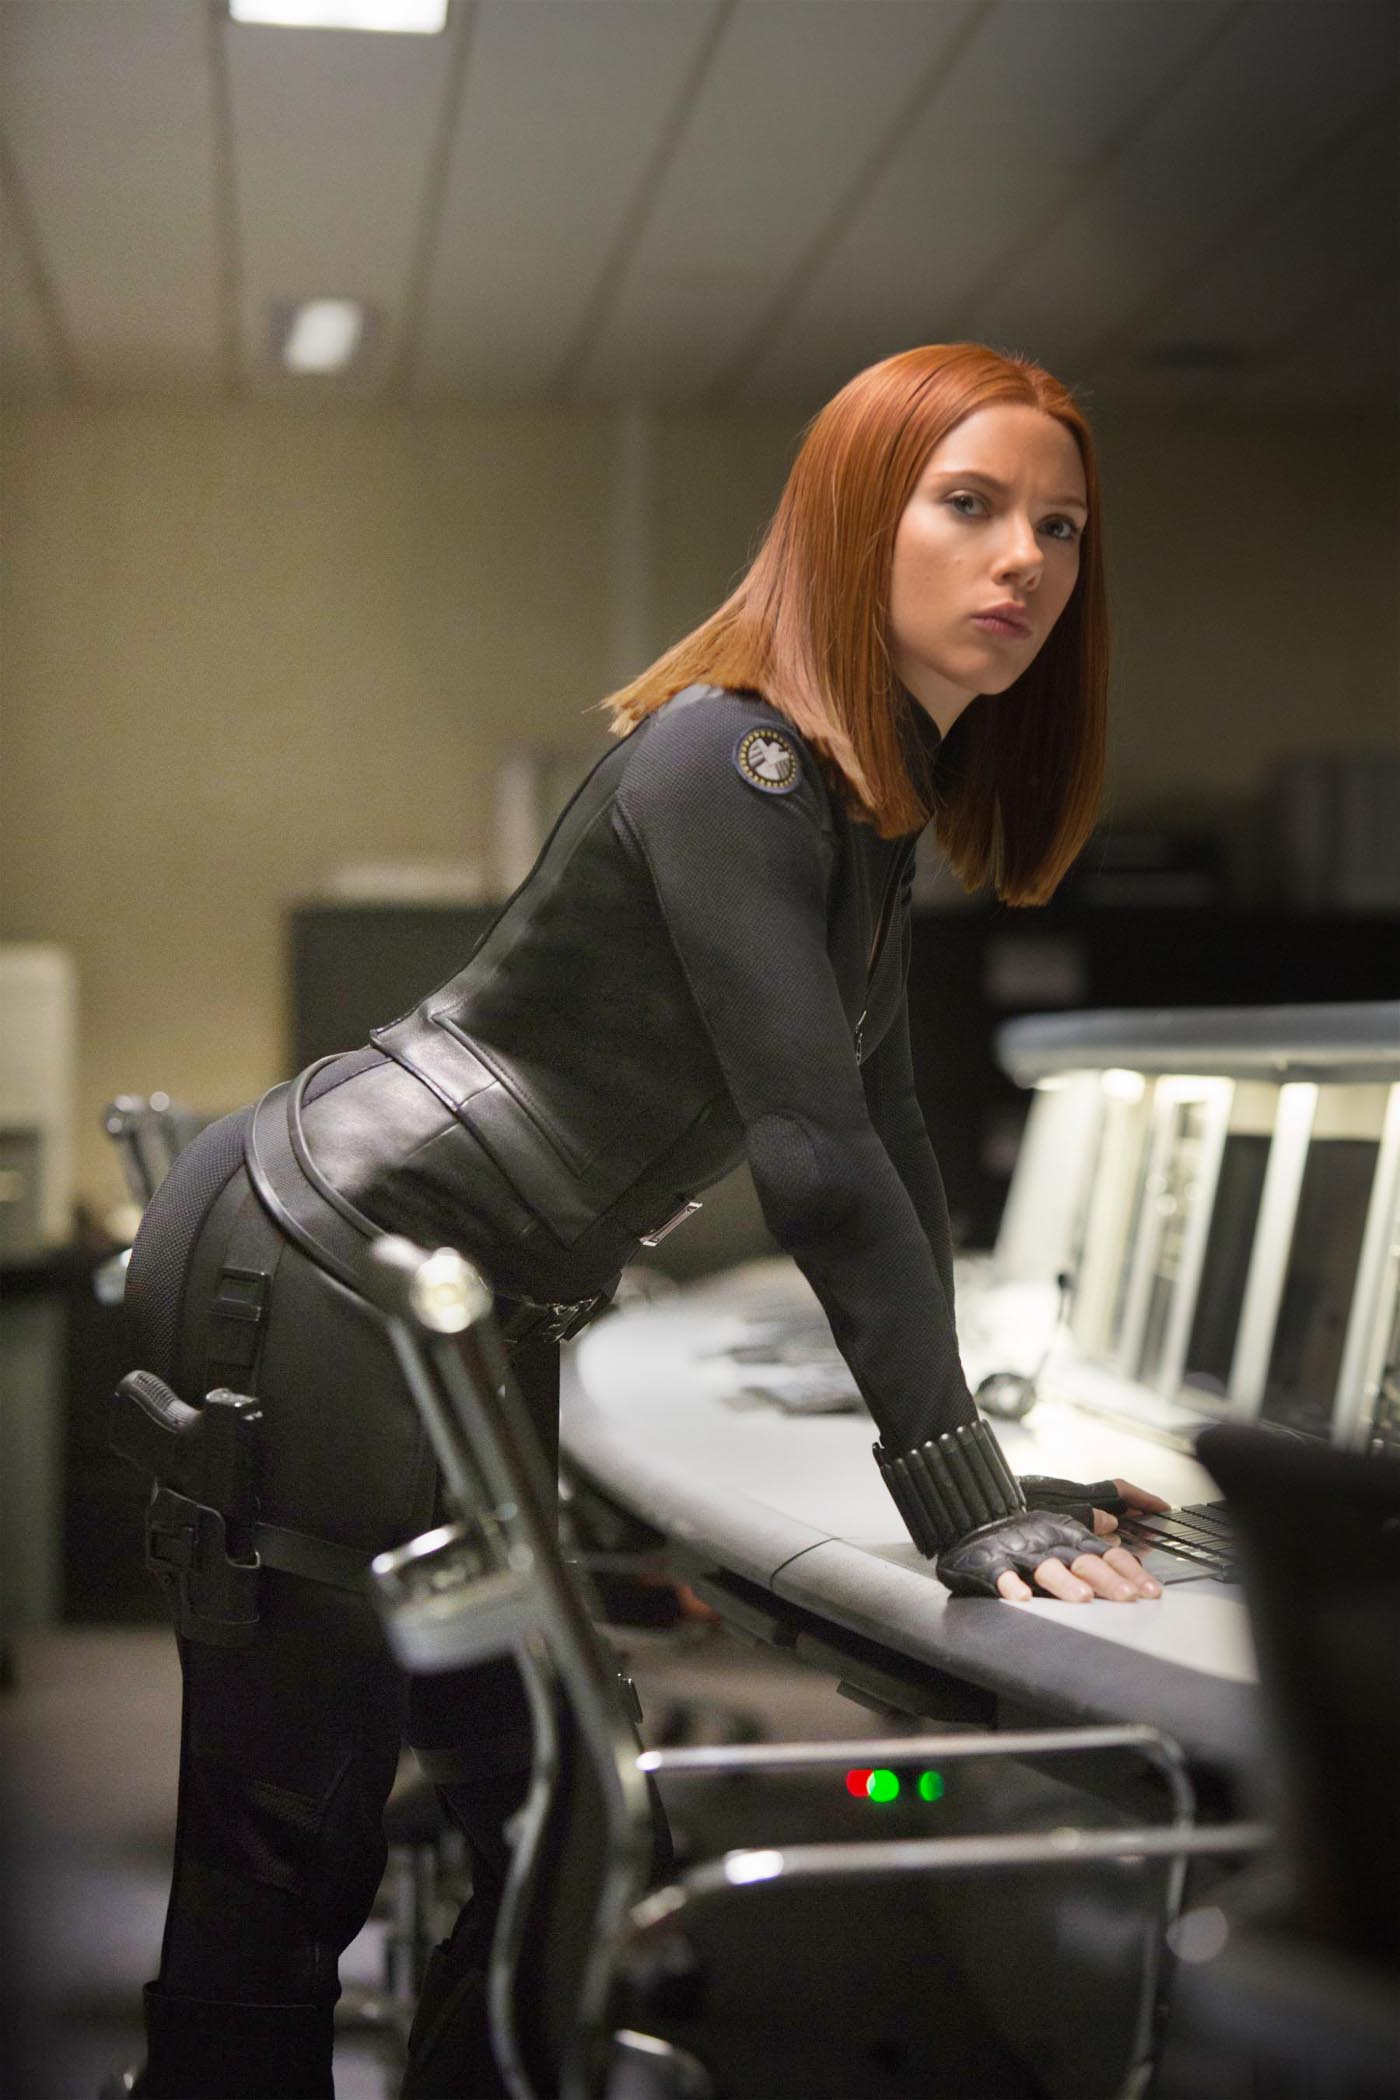 Black Widow Wallpapers Scarlett Johansson - WallpaperSafari